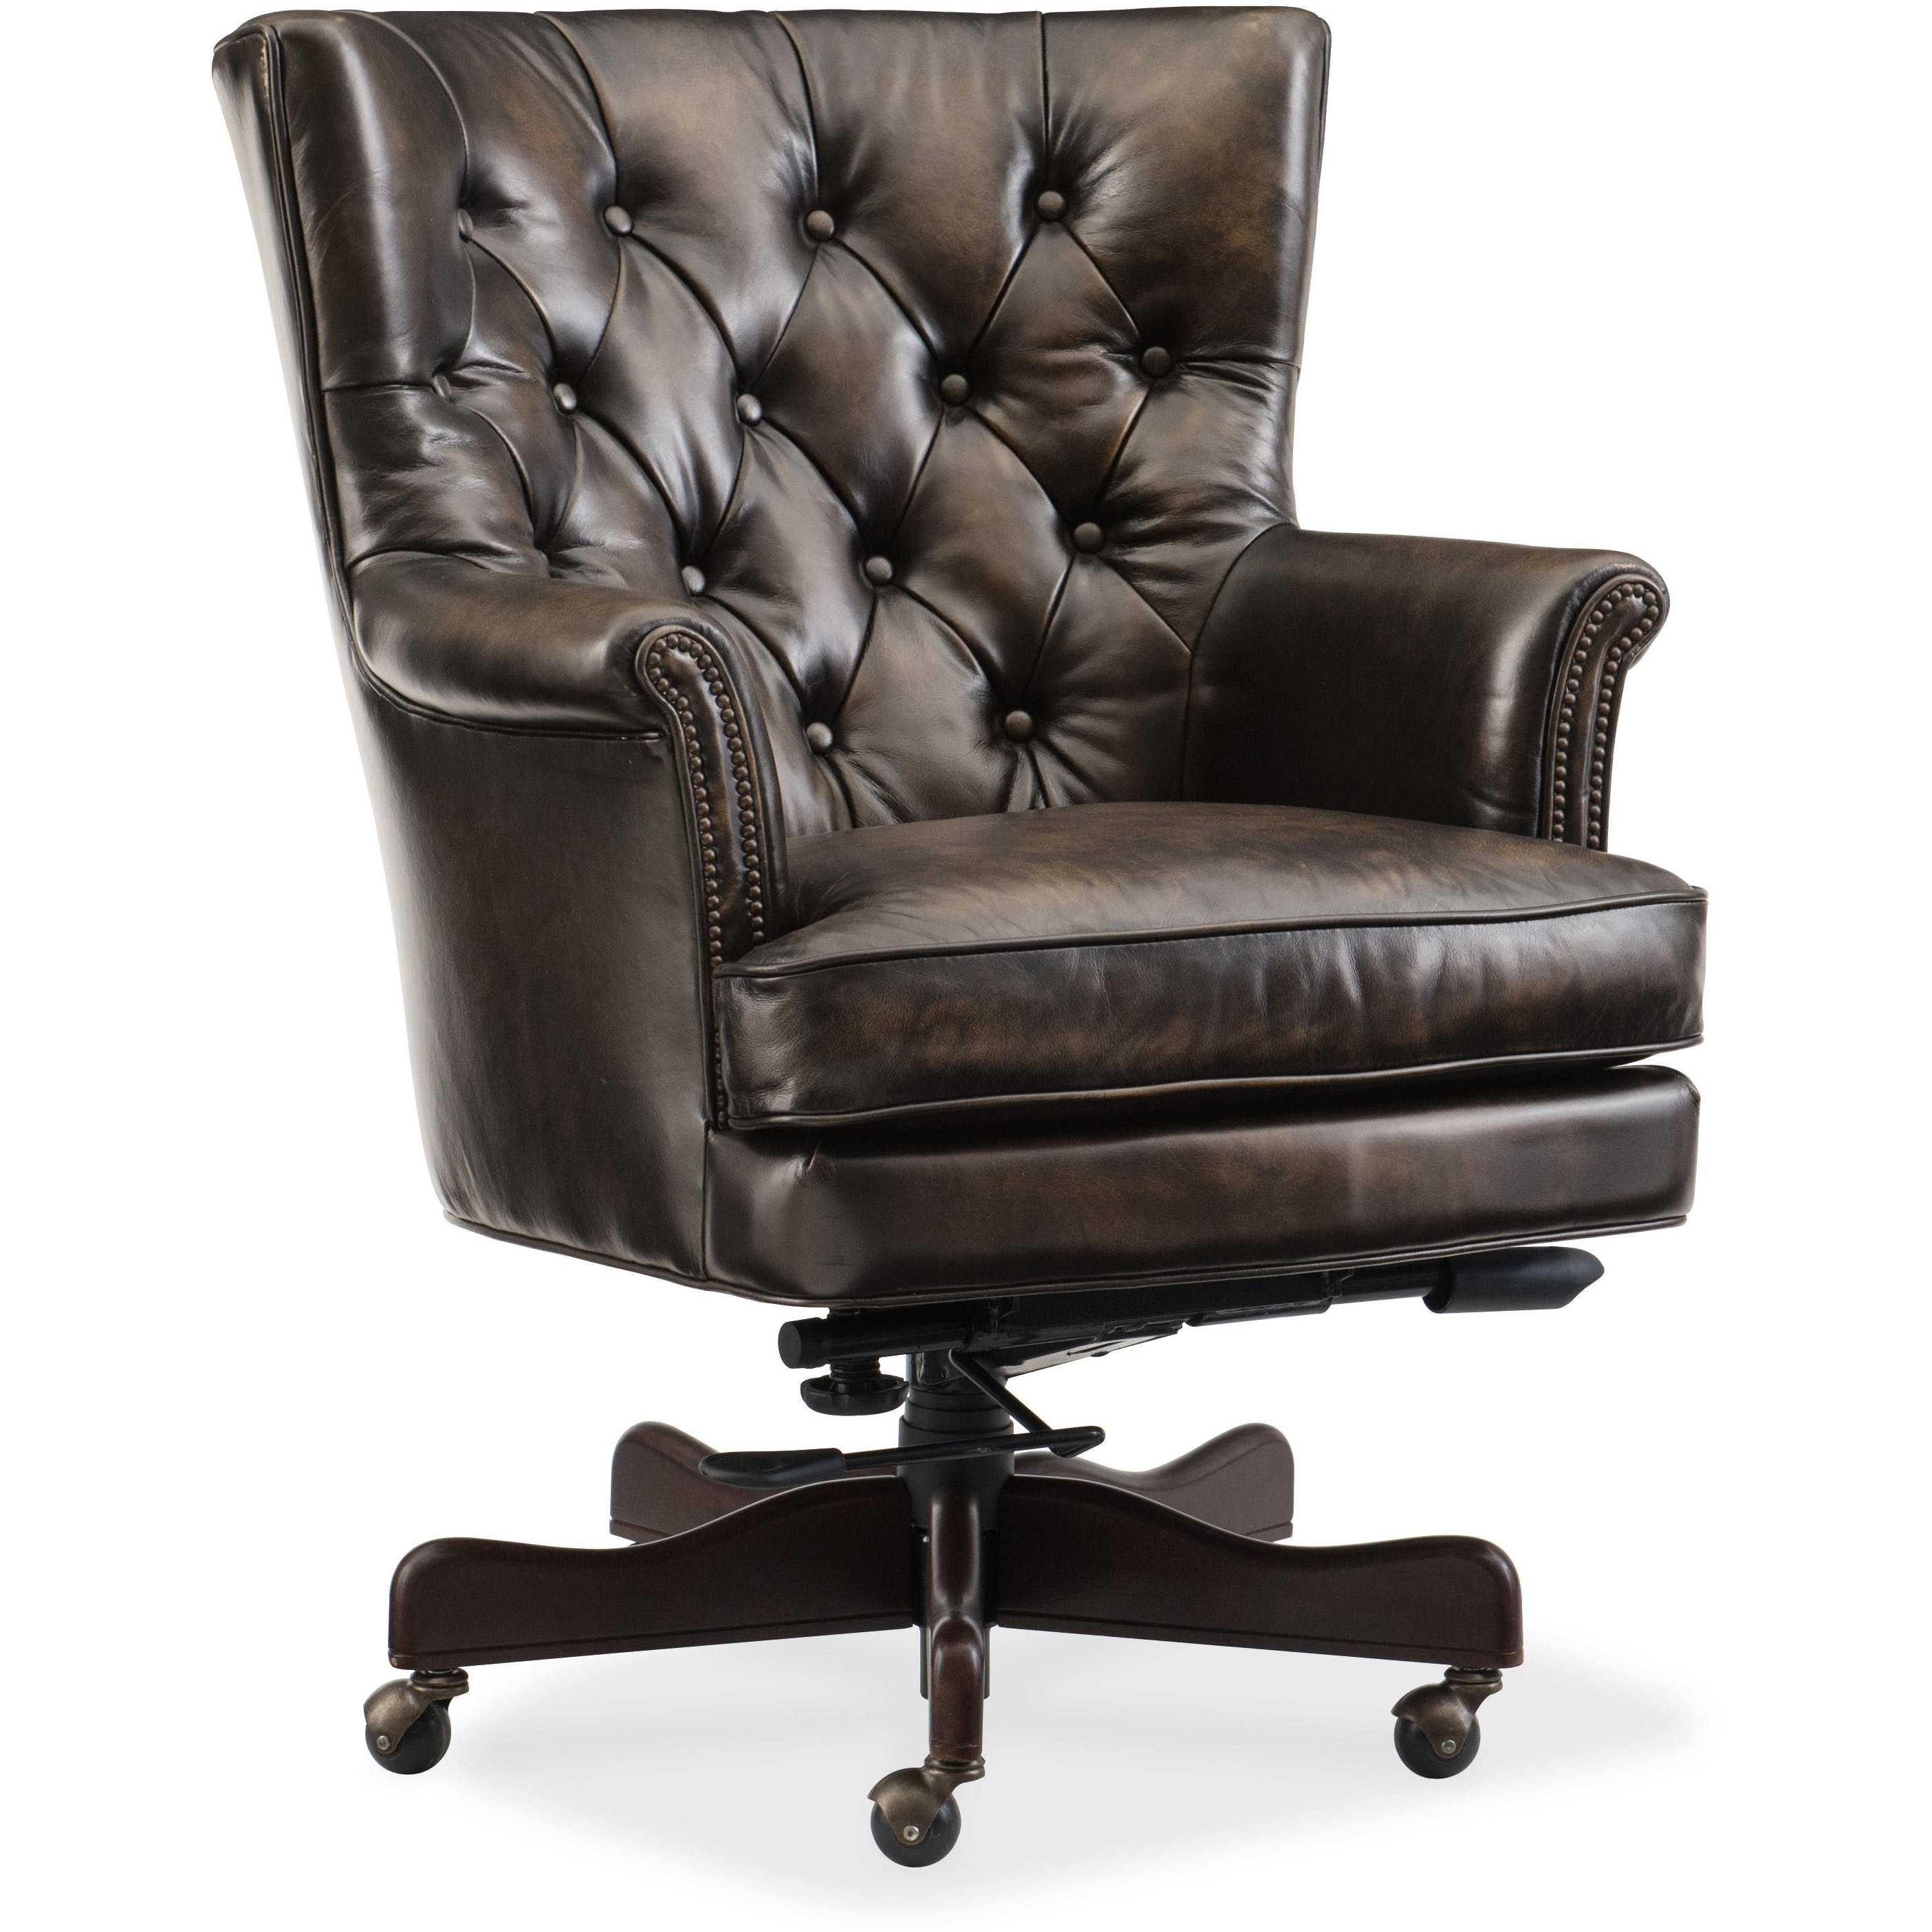 Theodore Home Office Chair Furnishmyhome Ca